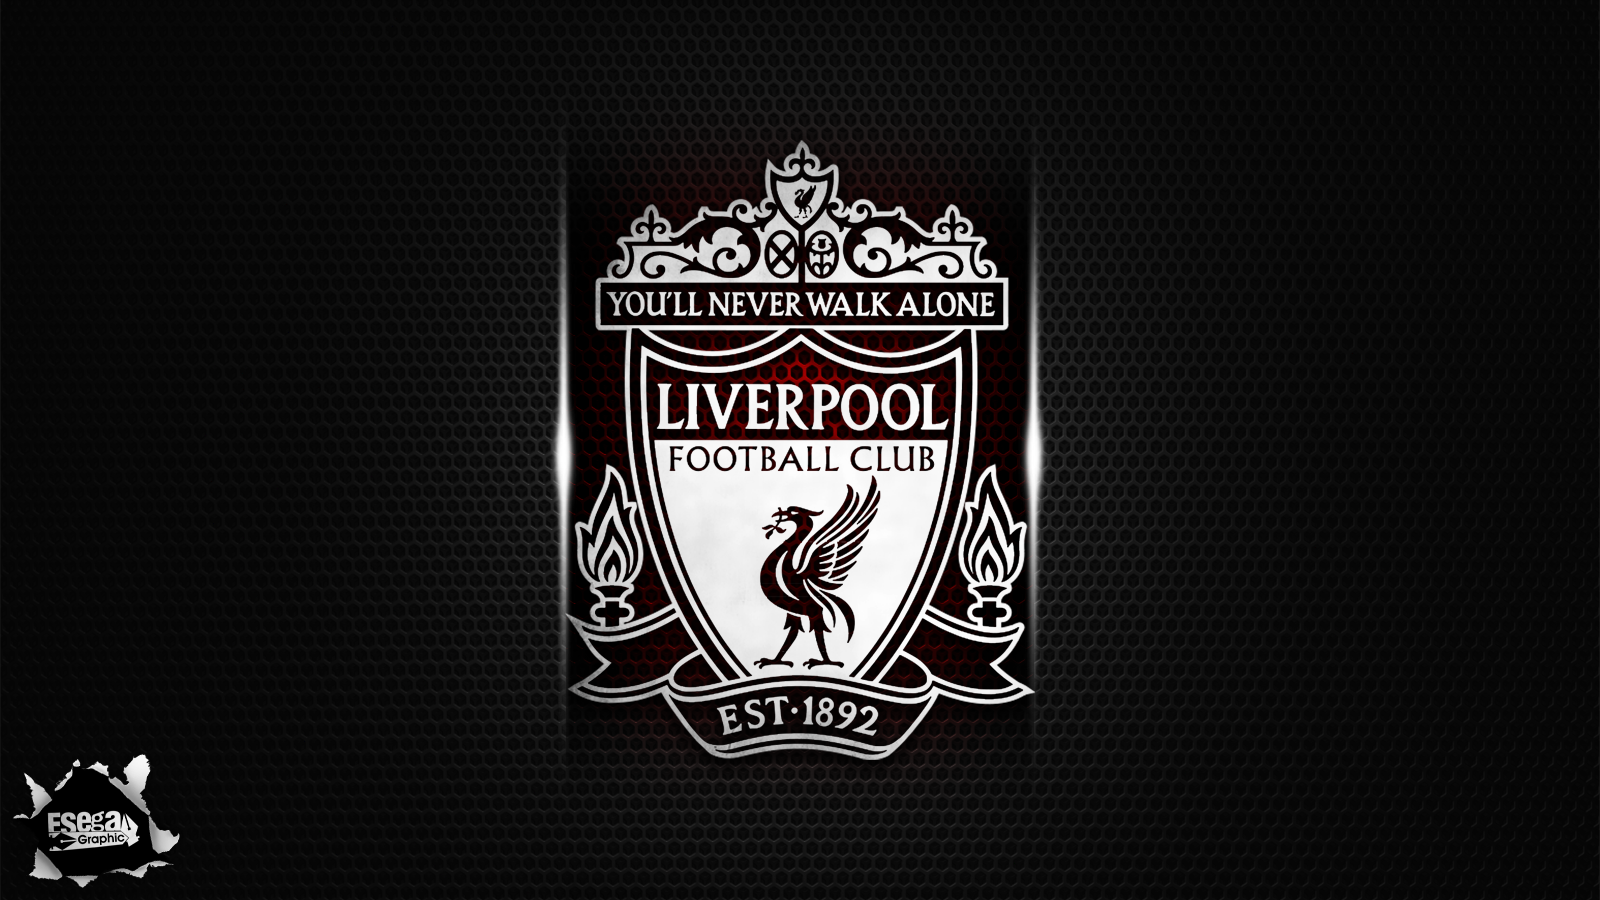 information about Liverpool or even videos related to Liverpool 1600x900